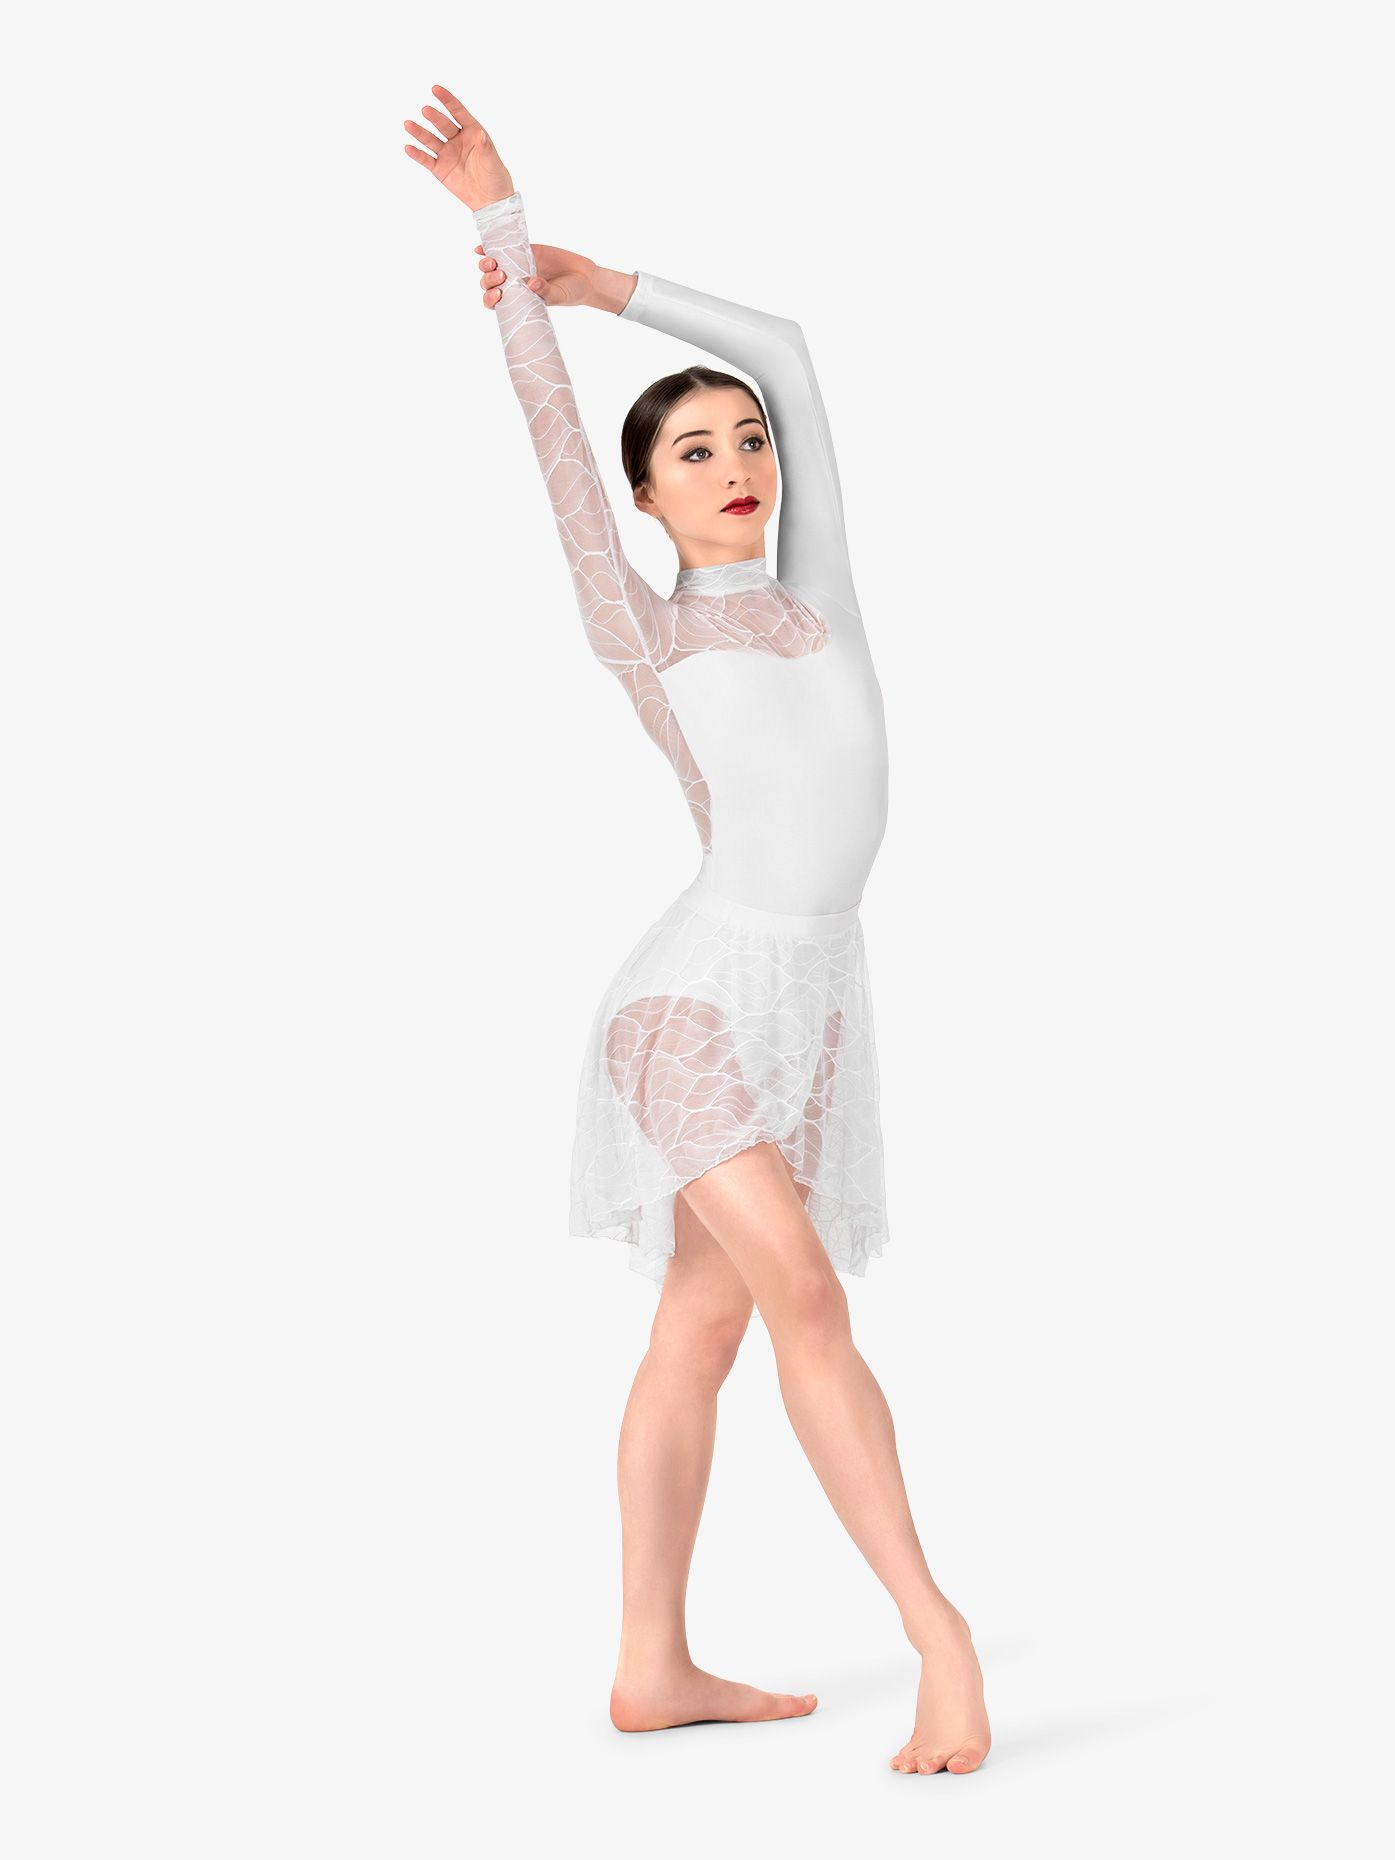 8c4f1ffb7cb0 Biggest dancewear mega store offering brand dance and ballet shoes, dance  clothing, recital costumes, dance tights. Shop all pointe shoe brands and  dance ...